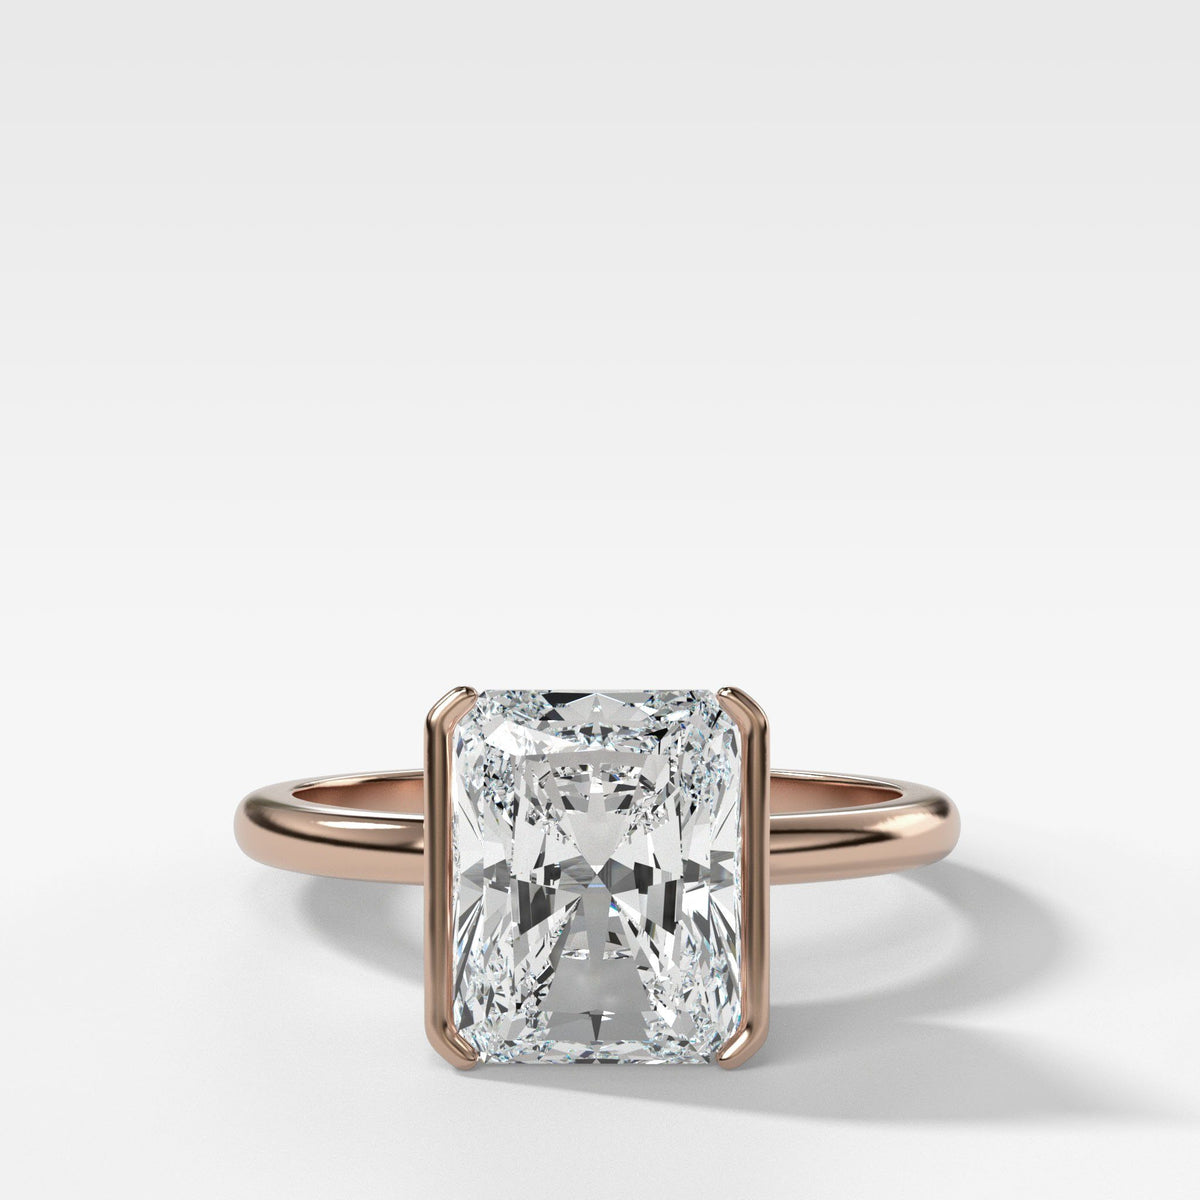 Half Bezel Solitaire Engagement ring with Elongated Radiant Cut in Rose Gold by Good Stone